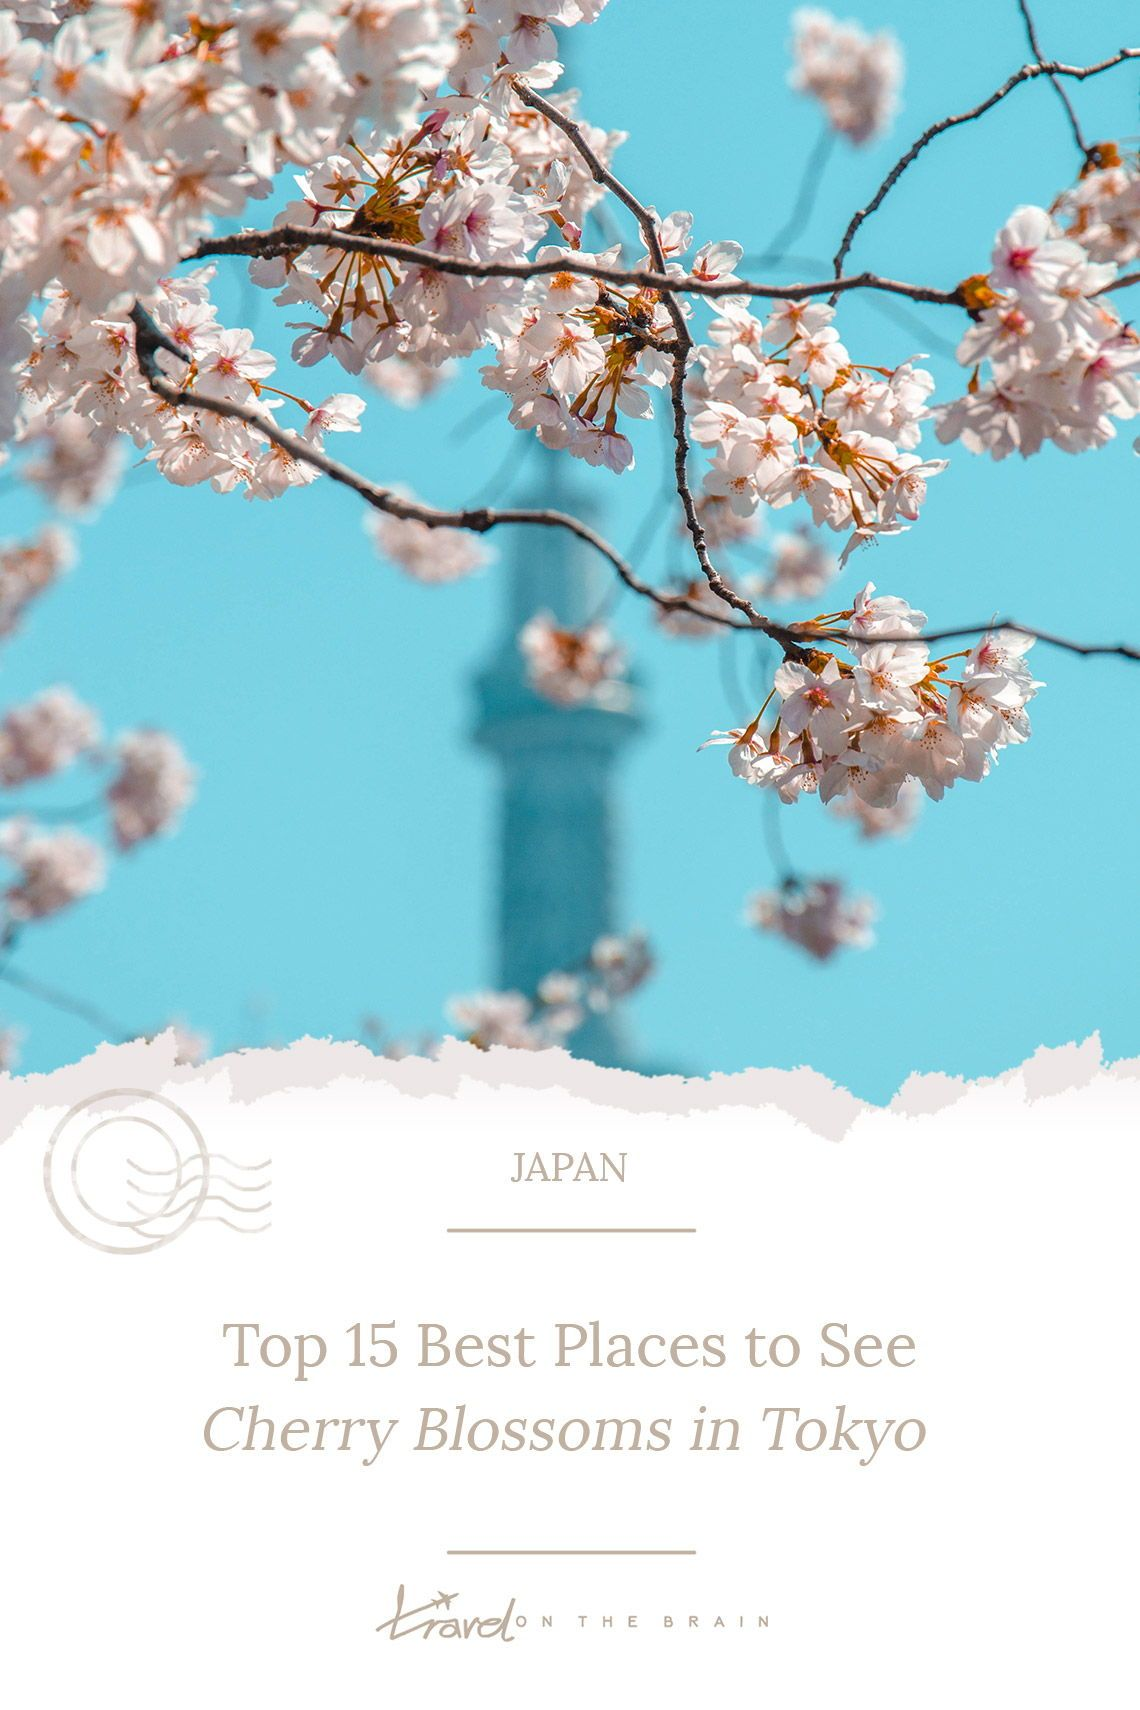 25 Best Places To See Cherry Blossoms In Tokyo Free Guide Cherry Blossom Blossom Cherry Blossom Japan